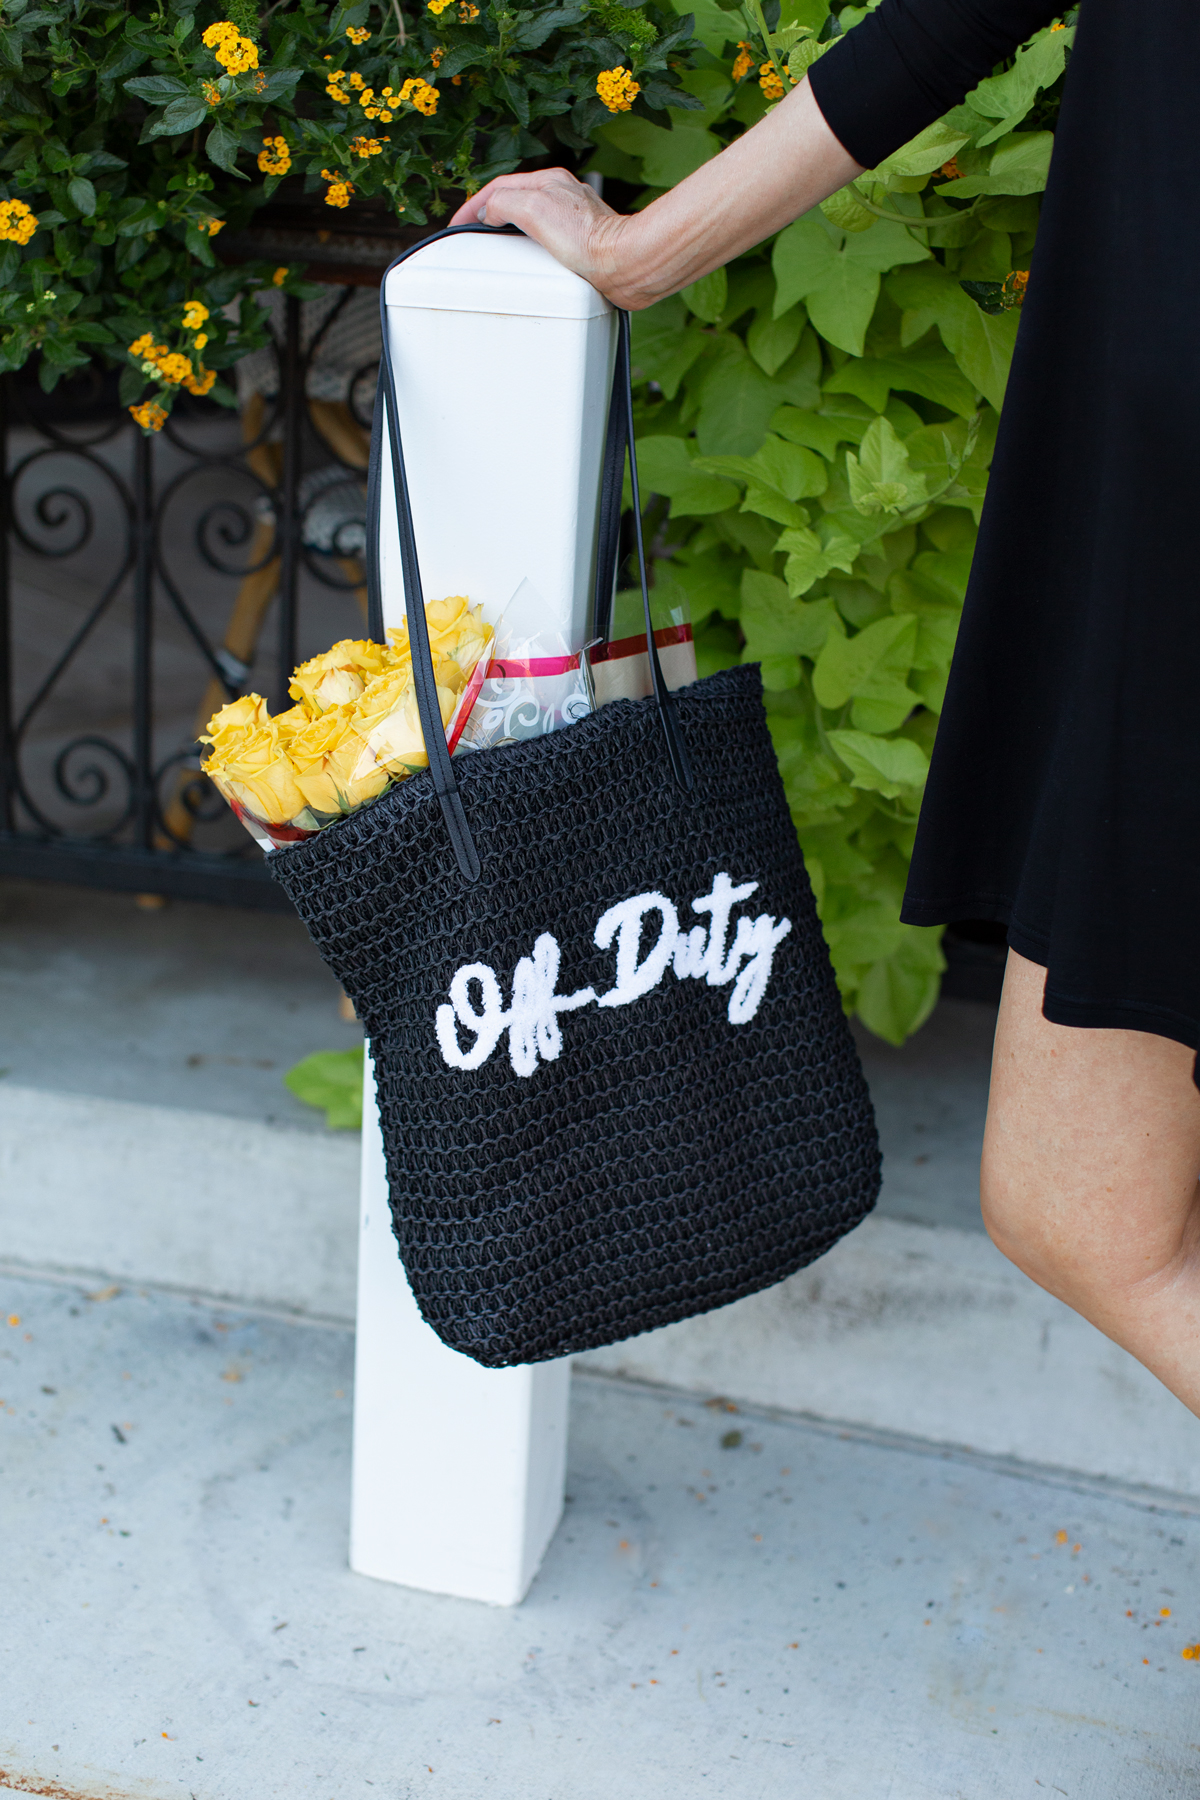 black raffia bag with off-duty on it in white letters